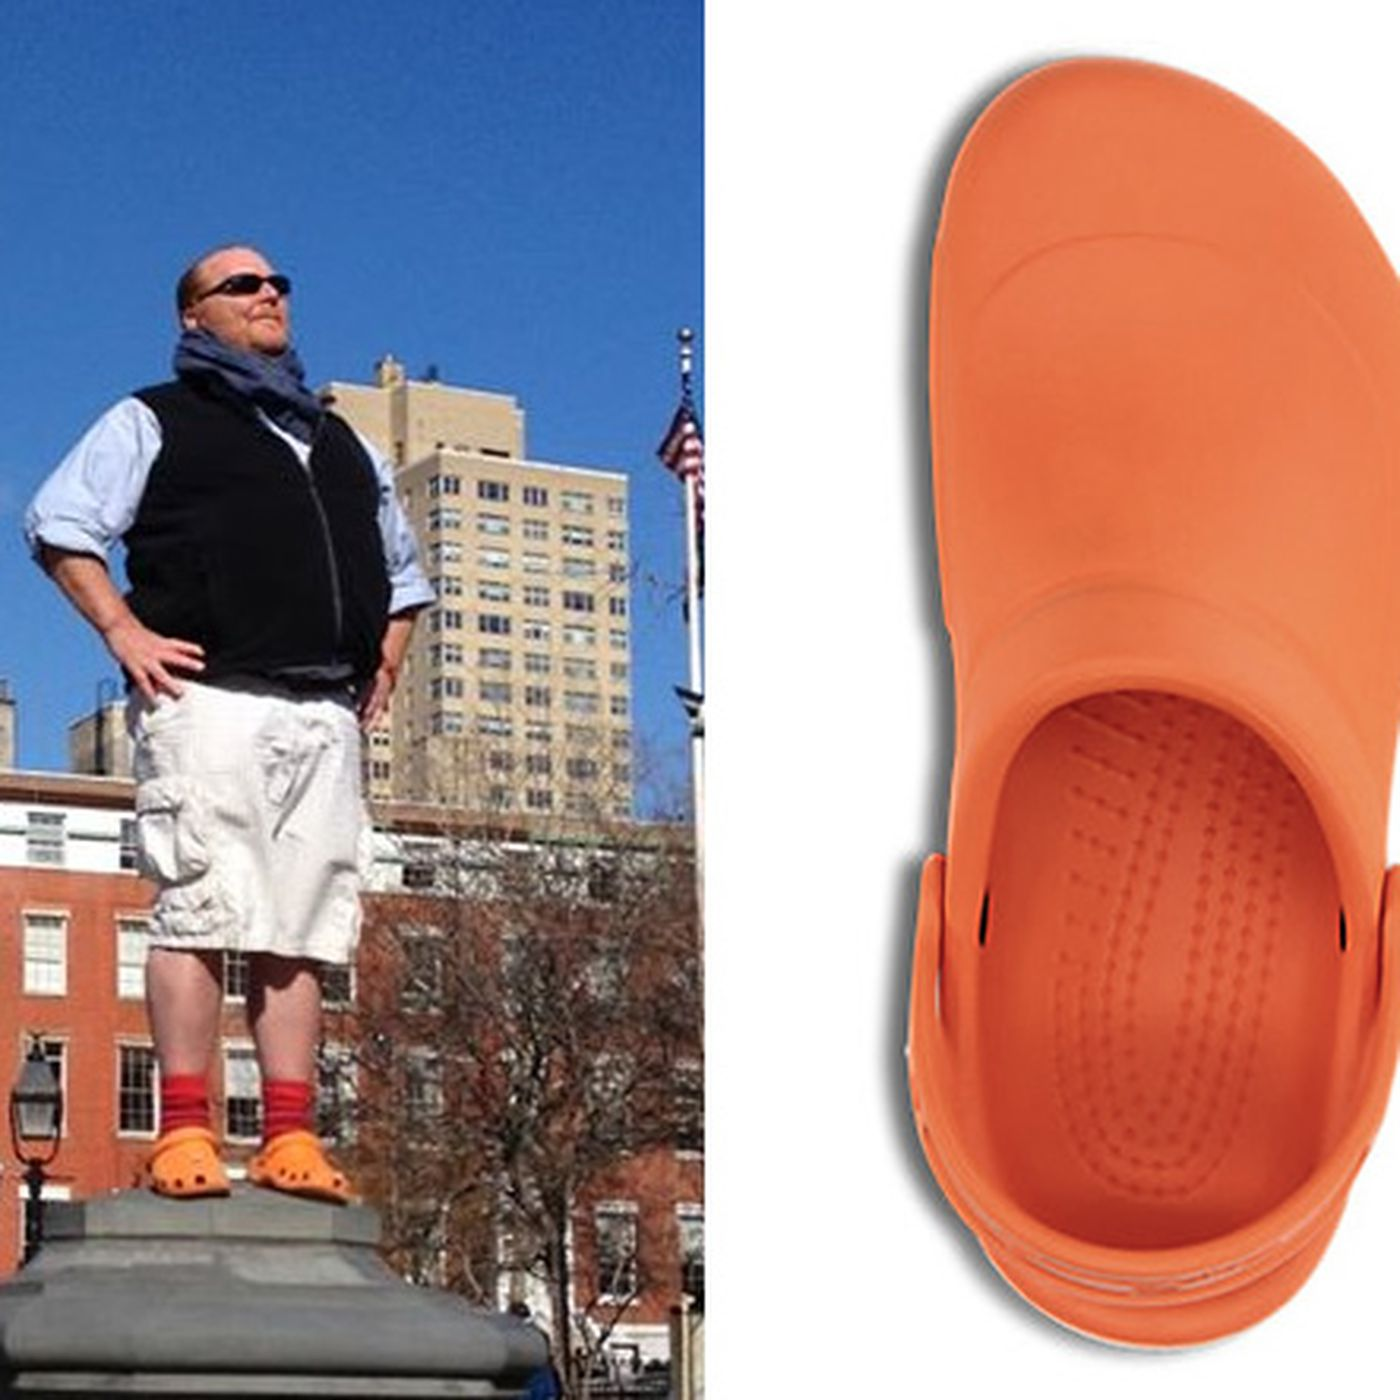 a5cea22a1 Mario Batali Ordered 200 Pairs of Orange Crocs Because the Color Was  Discontinued